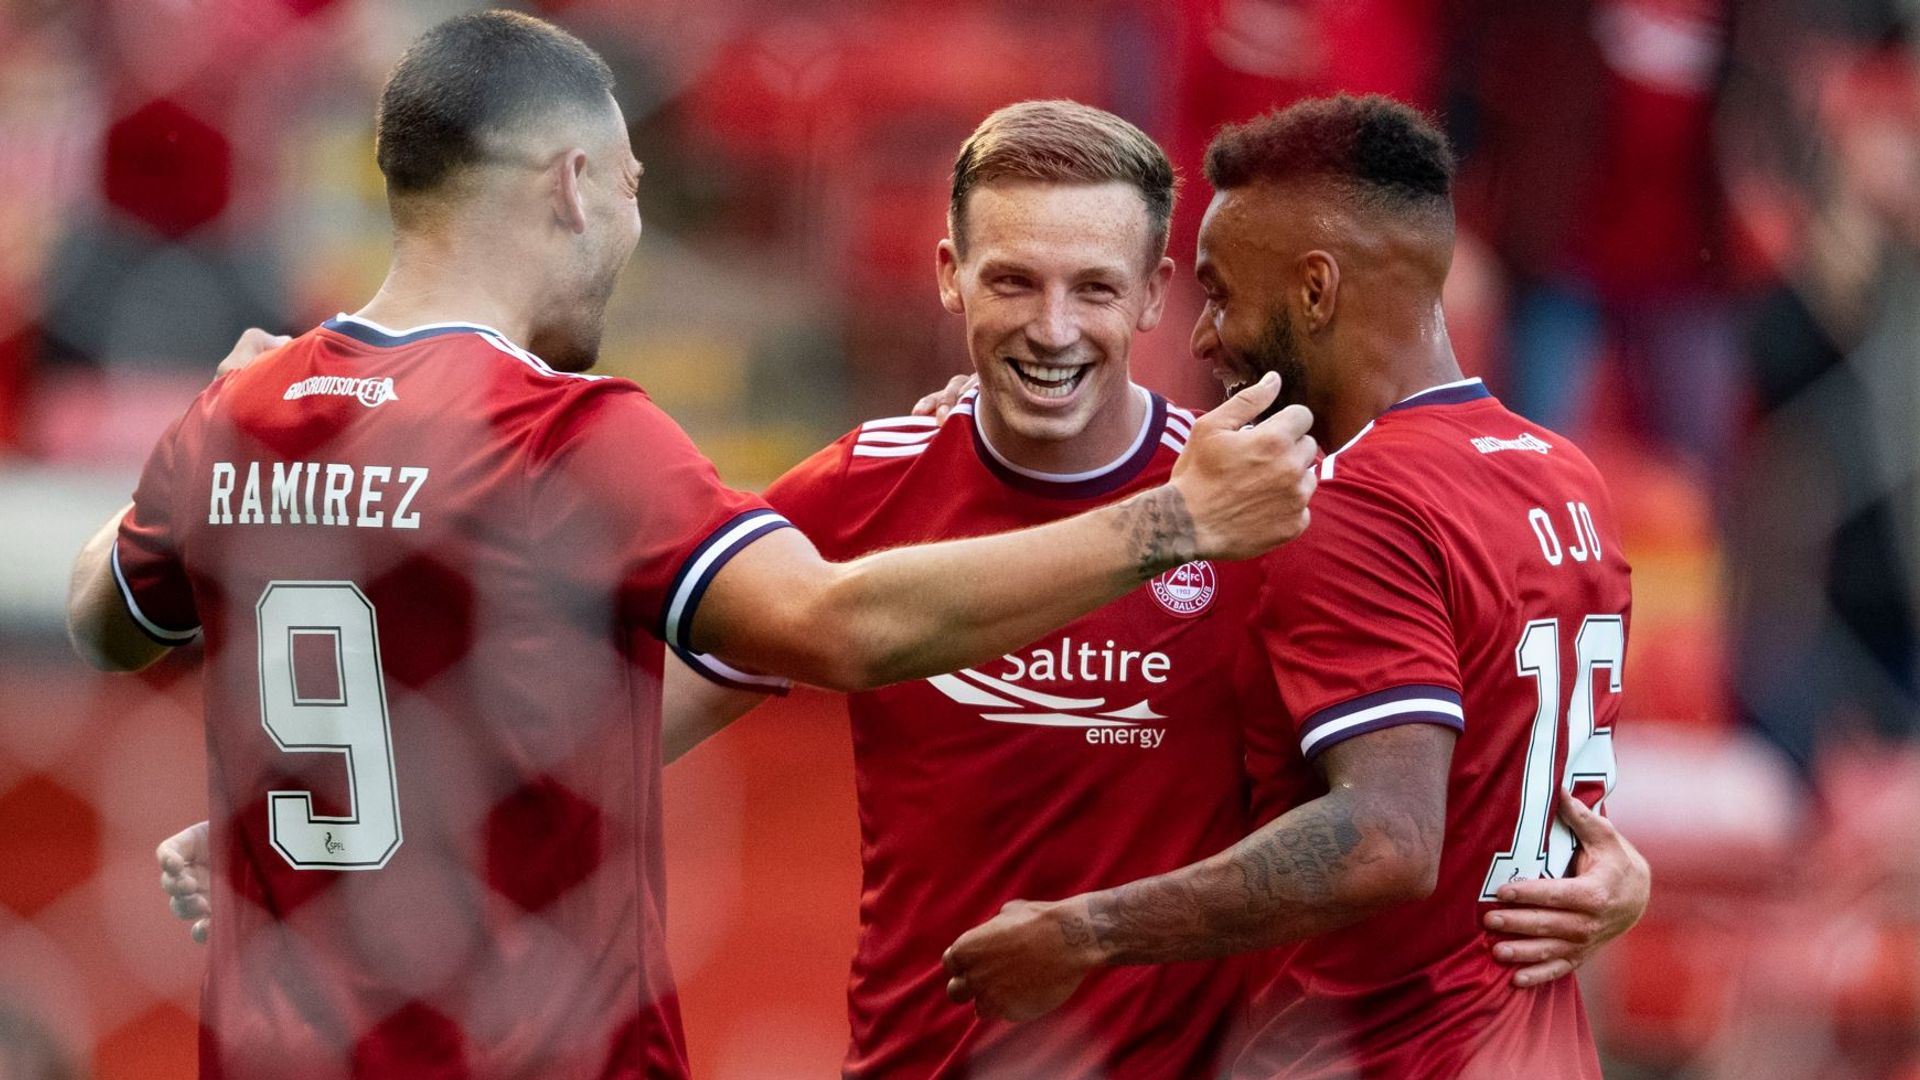 Ferguson at the double as Dons stroll to EC win